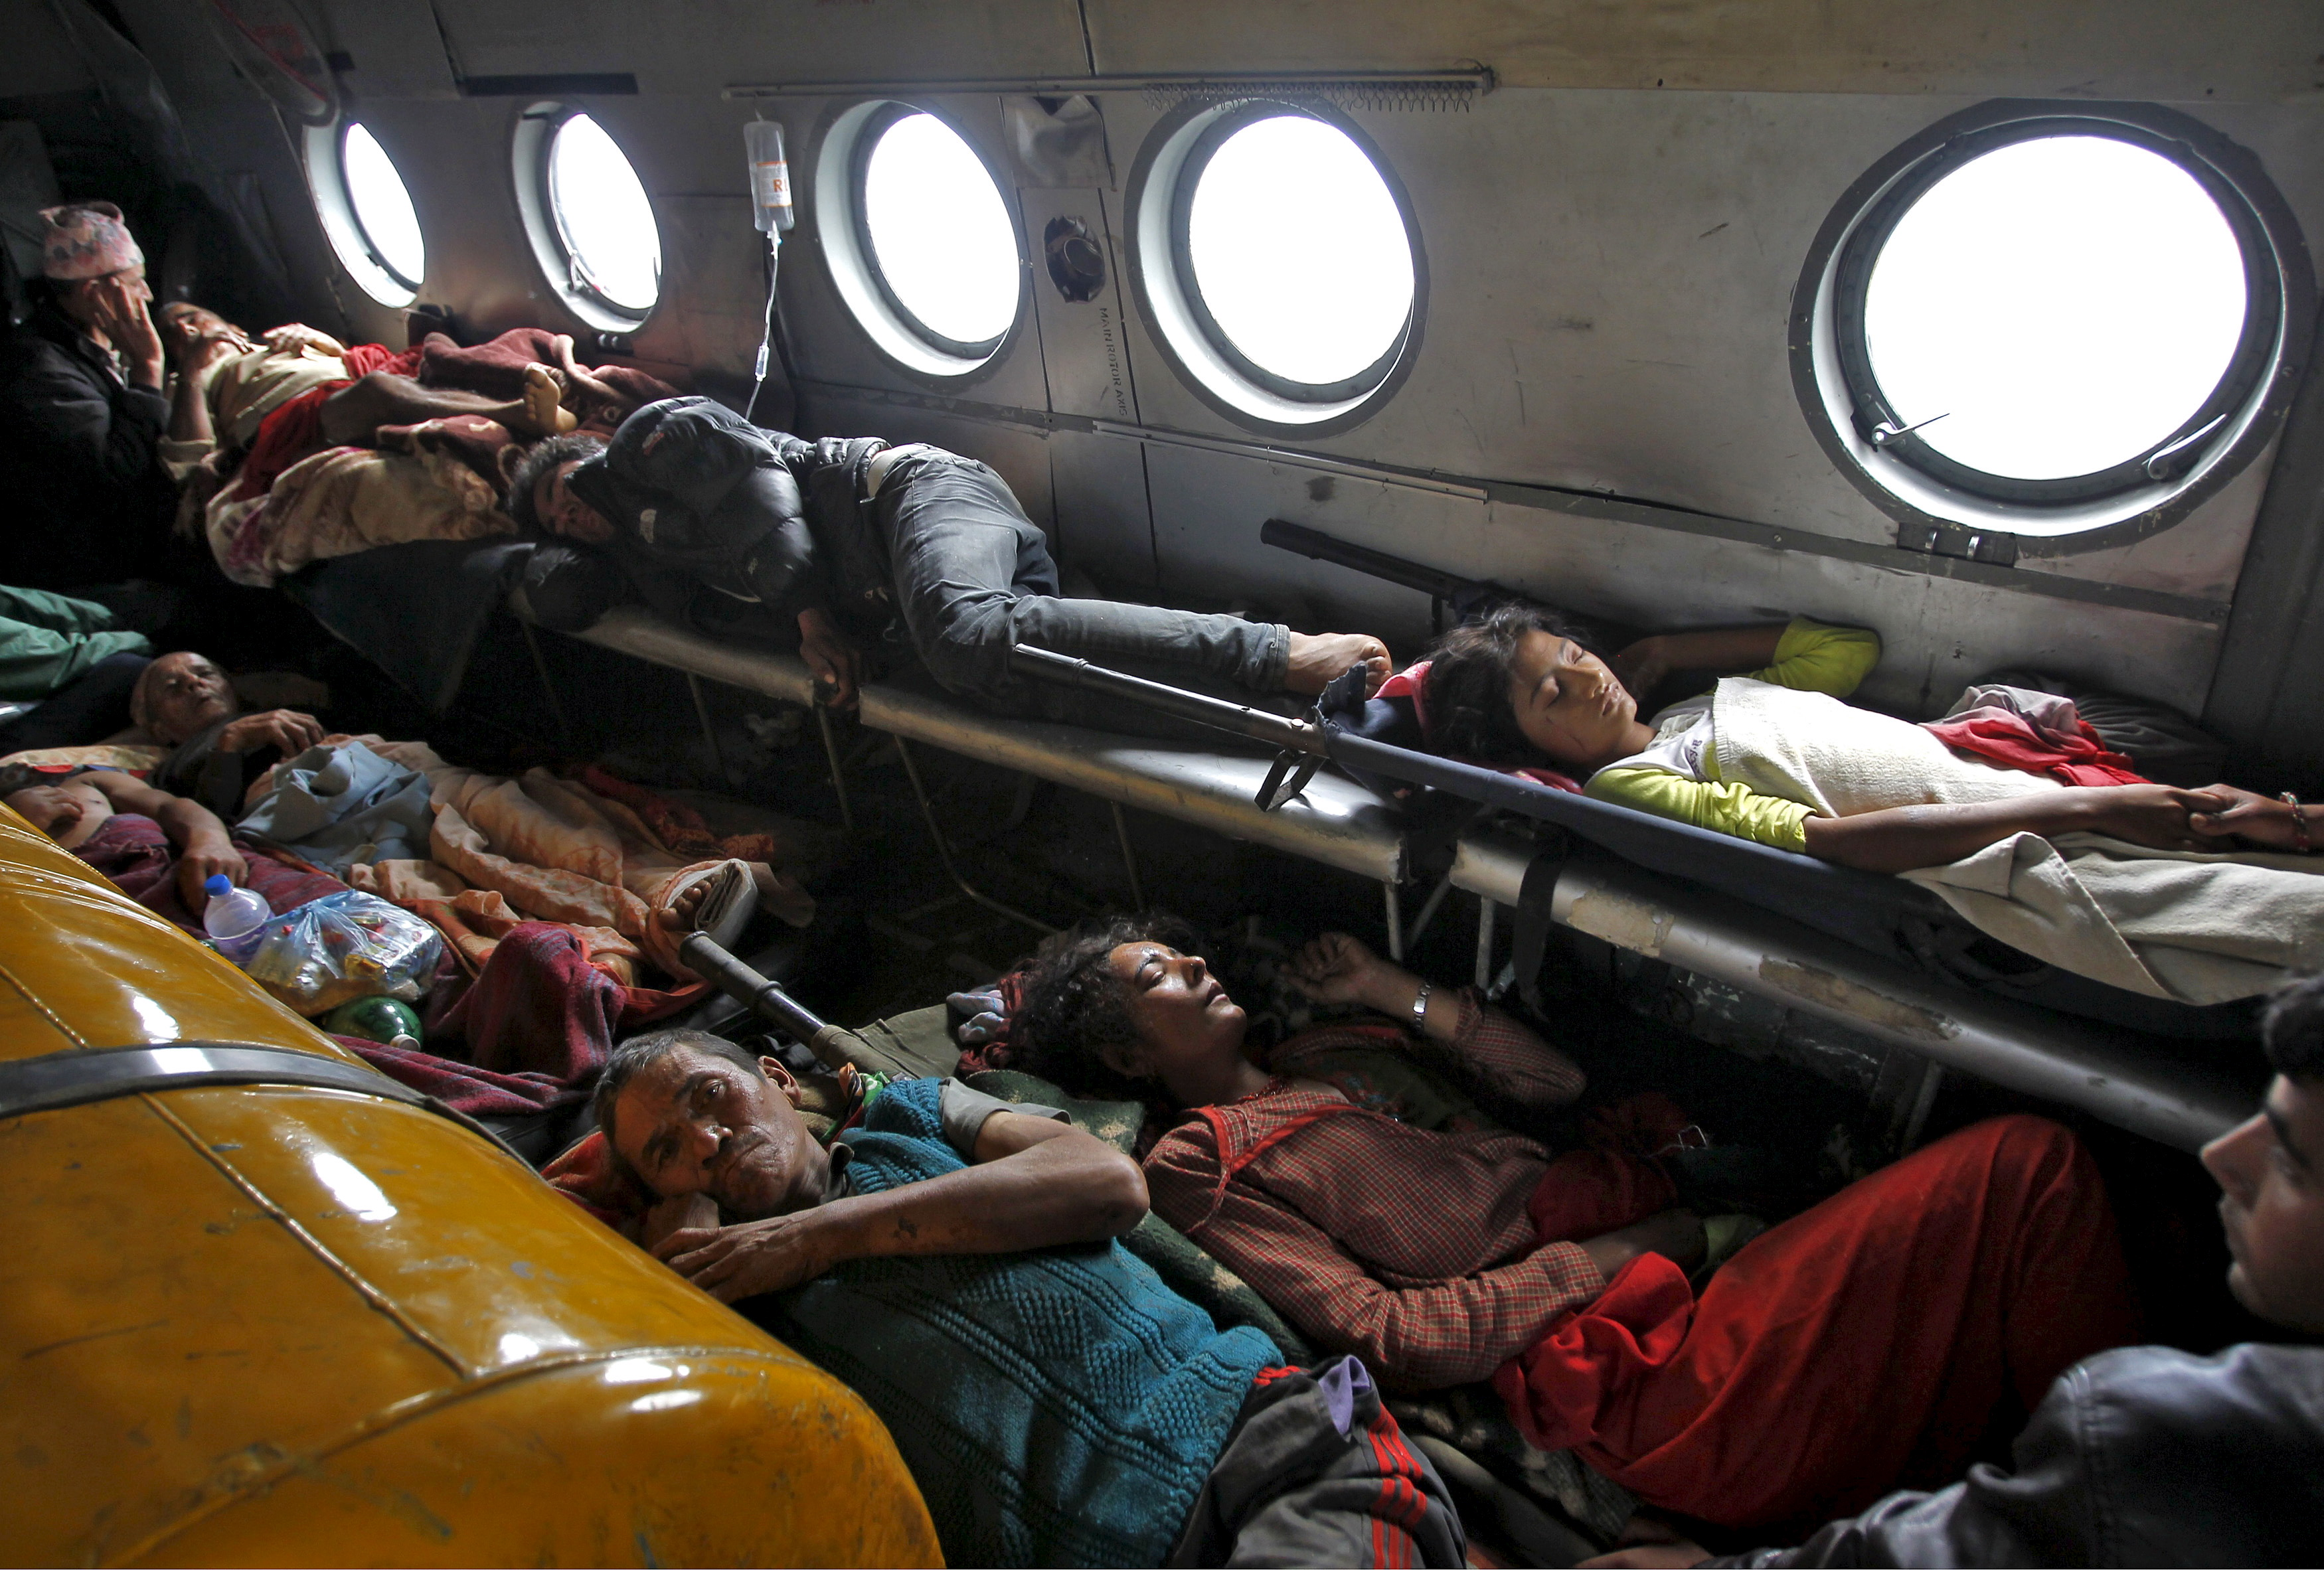 Those injured from Saturday's earthquake lie inside an Indian Air Force helicopter as they are evacuated from Trishuli Bazar to the airport in Kathmandu, Nepal on Monday. Photo by Jitendra Prakash/Reuters